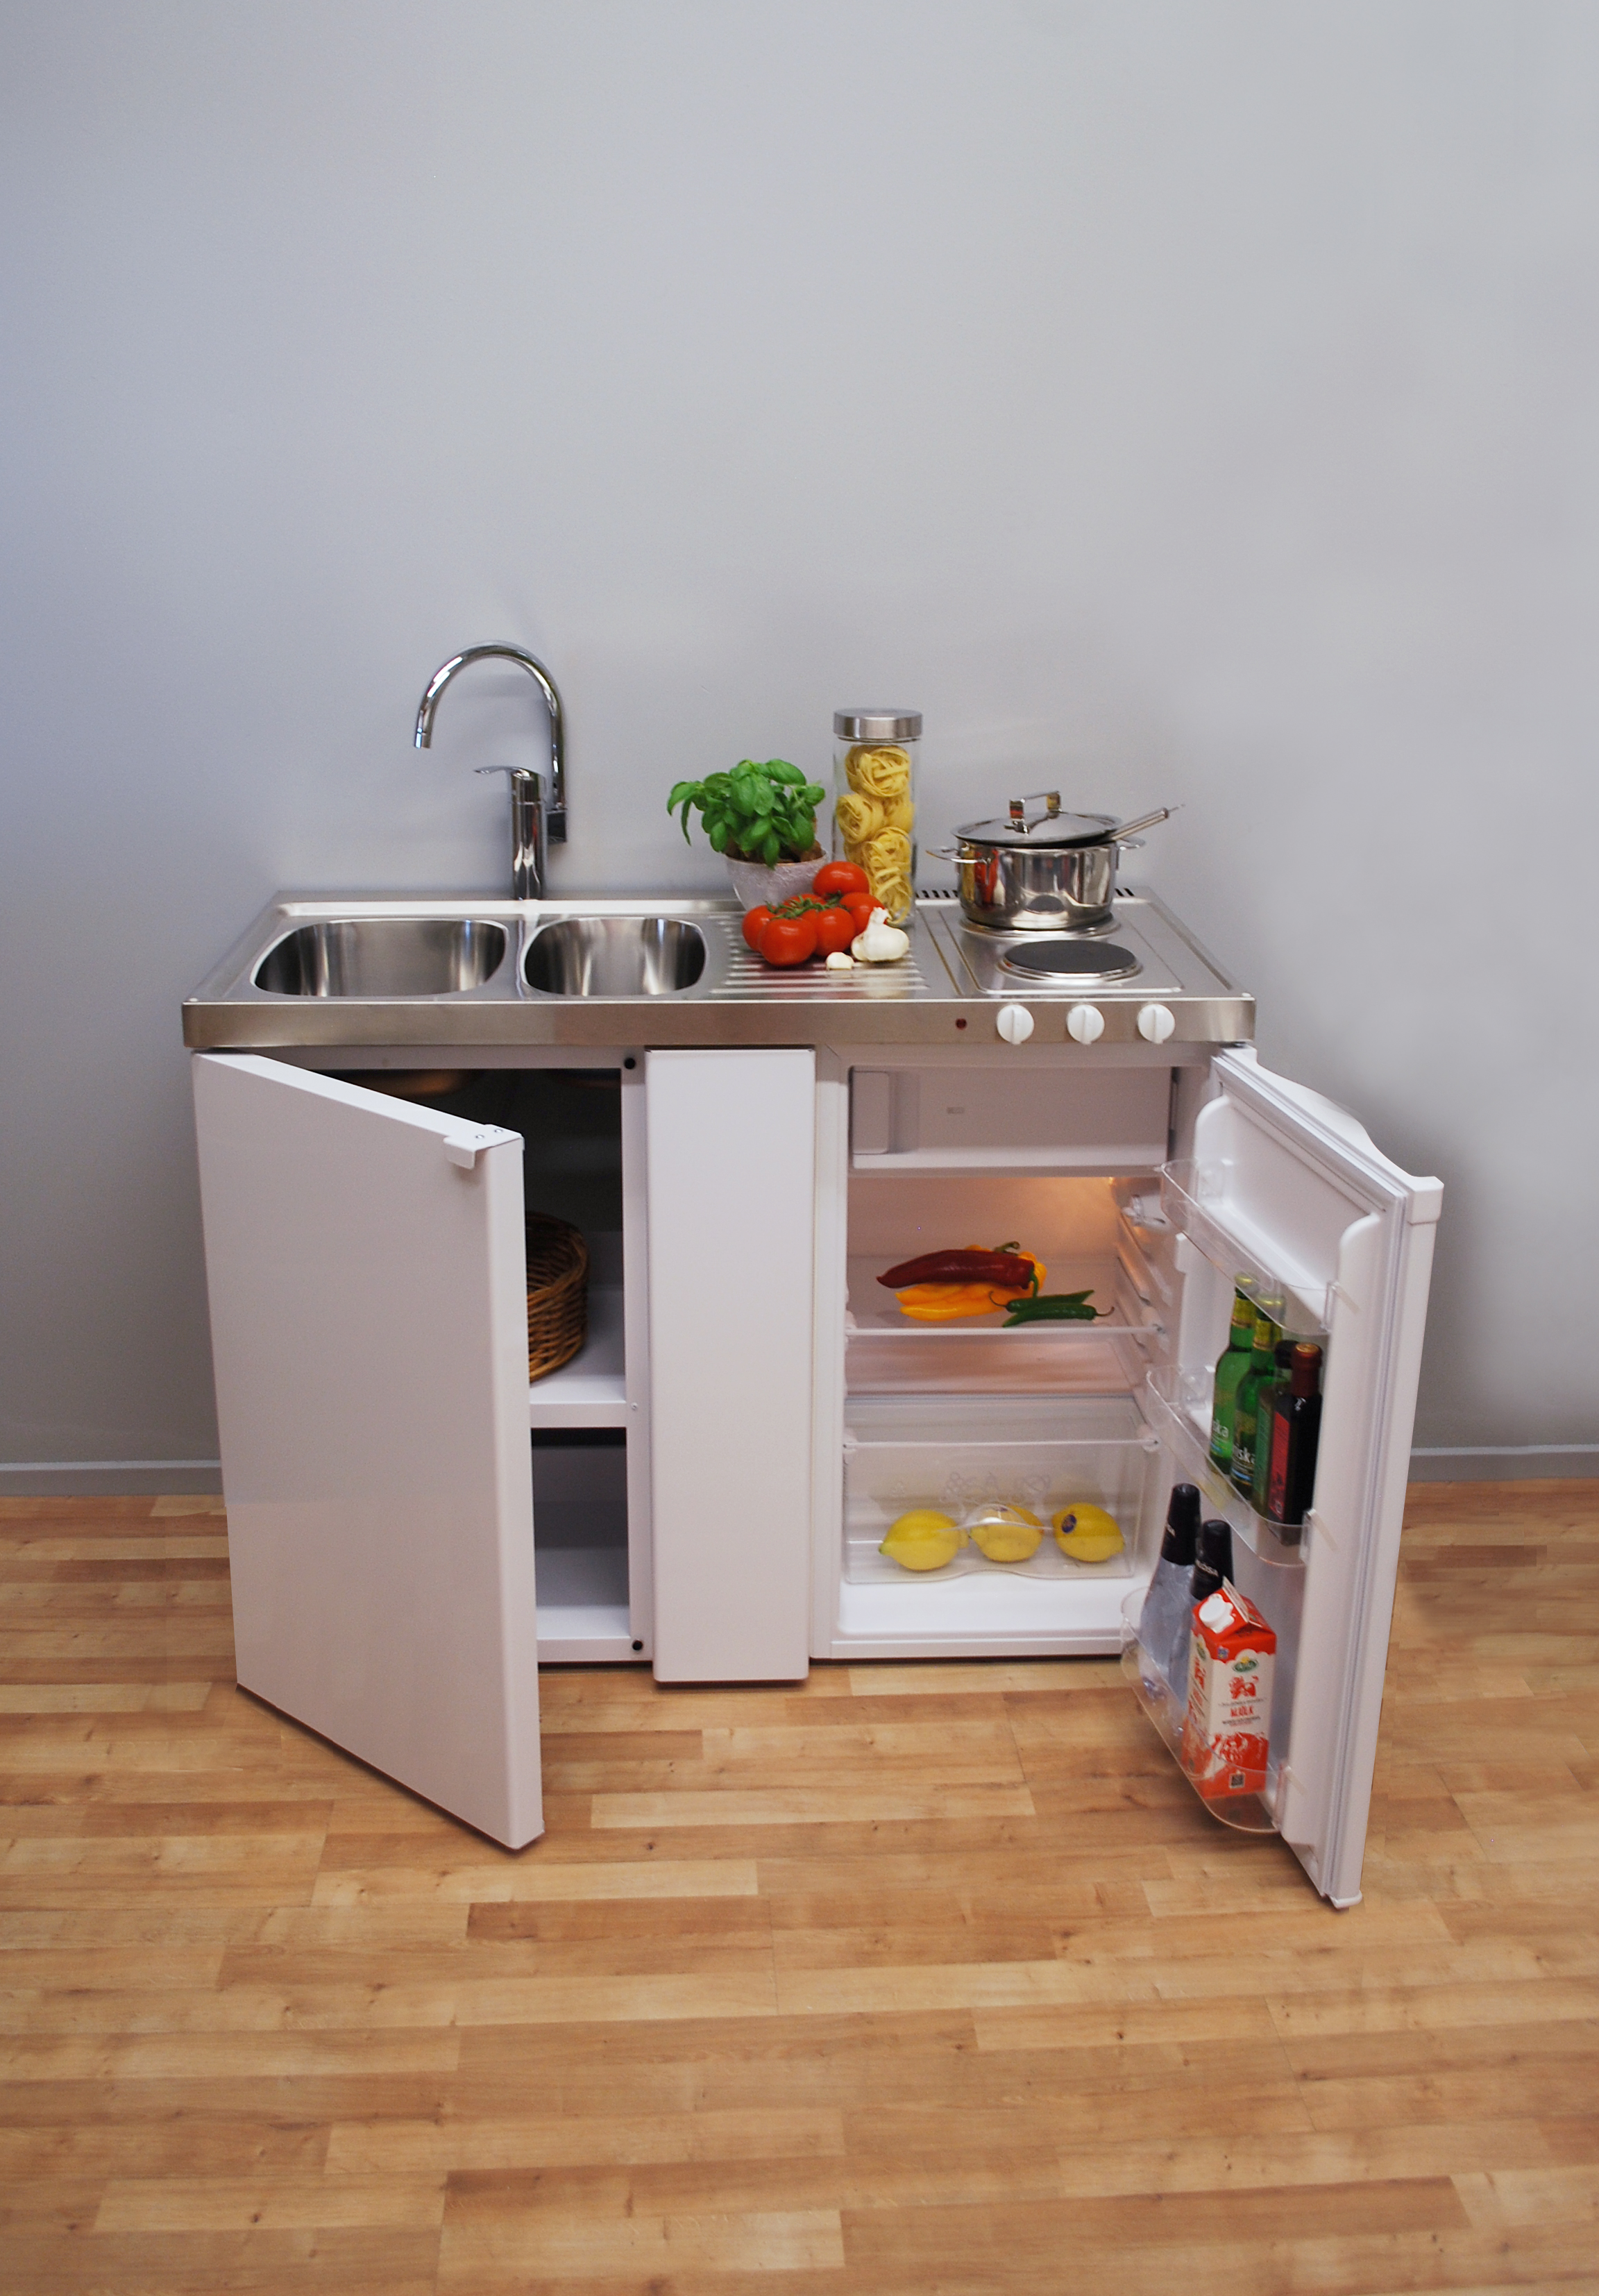 1.2 metre wide MK Mini Kitchen with hob (Model ref: EMK1200)